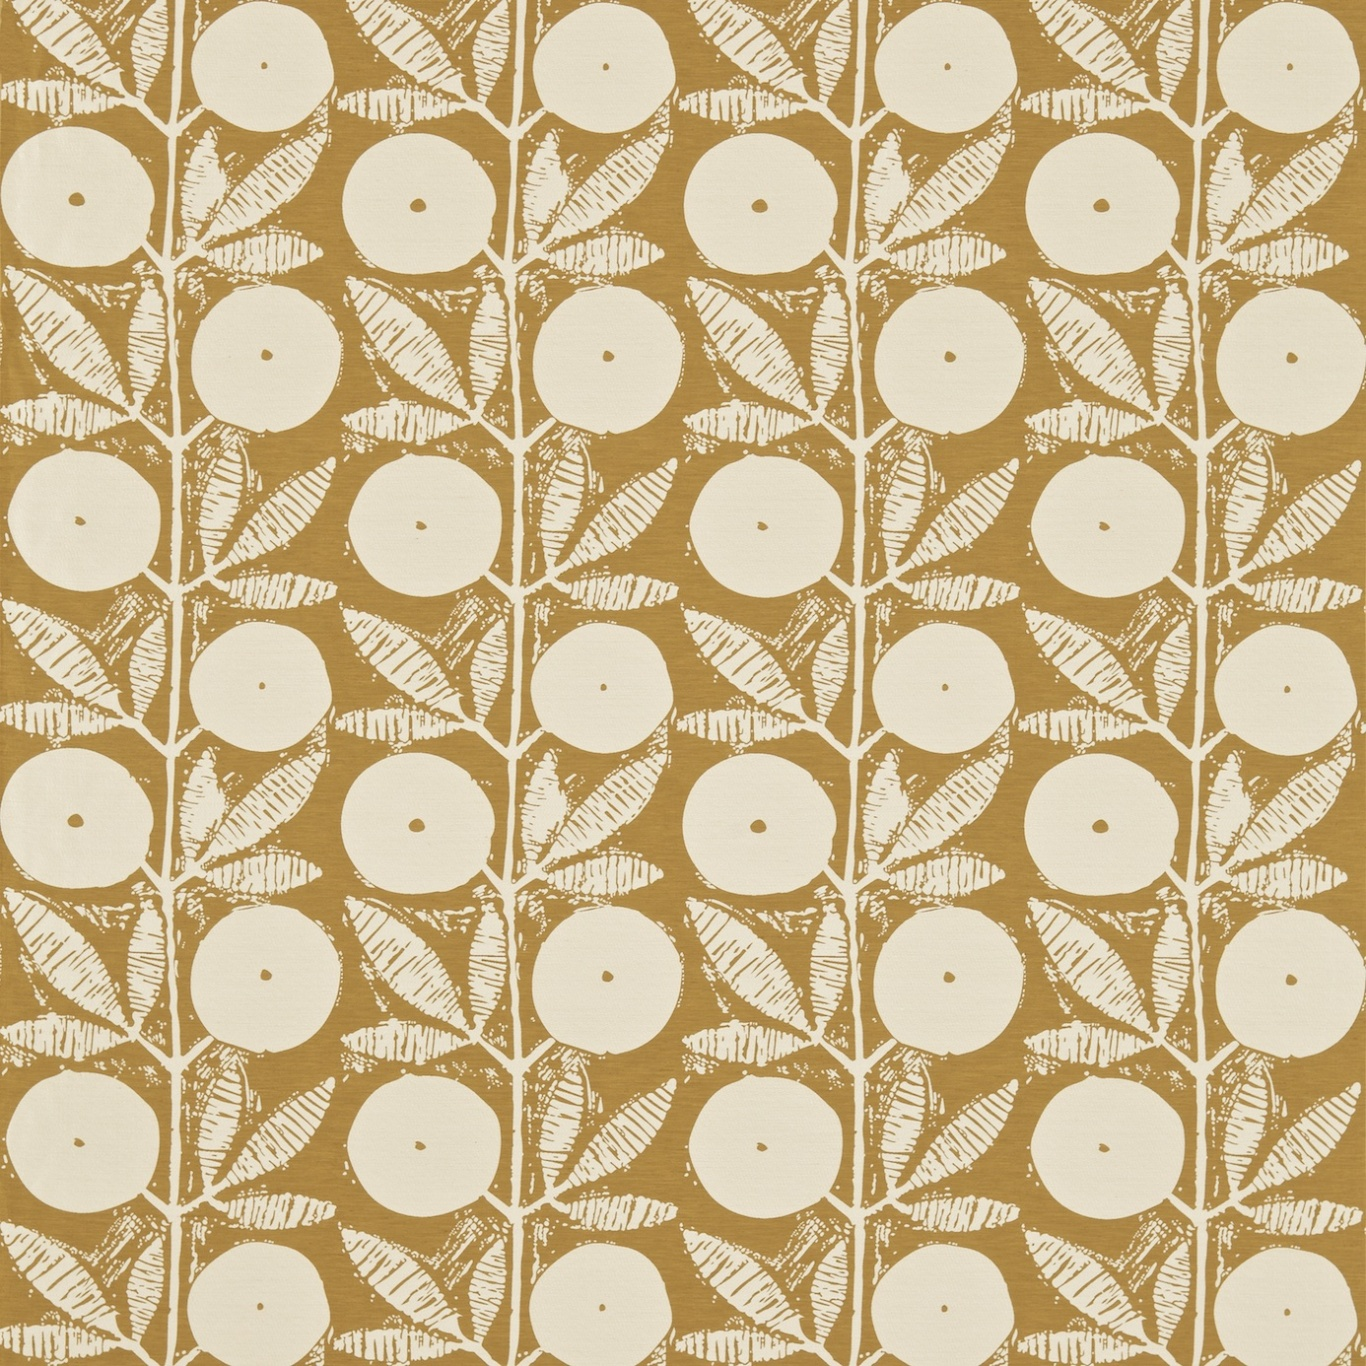 Image of Scion Somero Sand/Pumice Curtain Fabric 131536